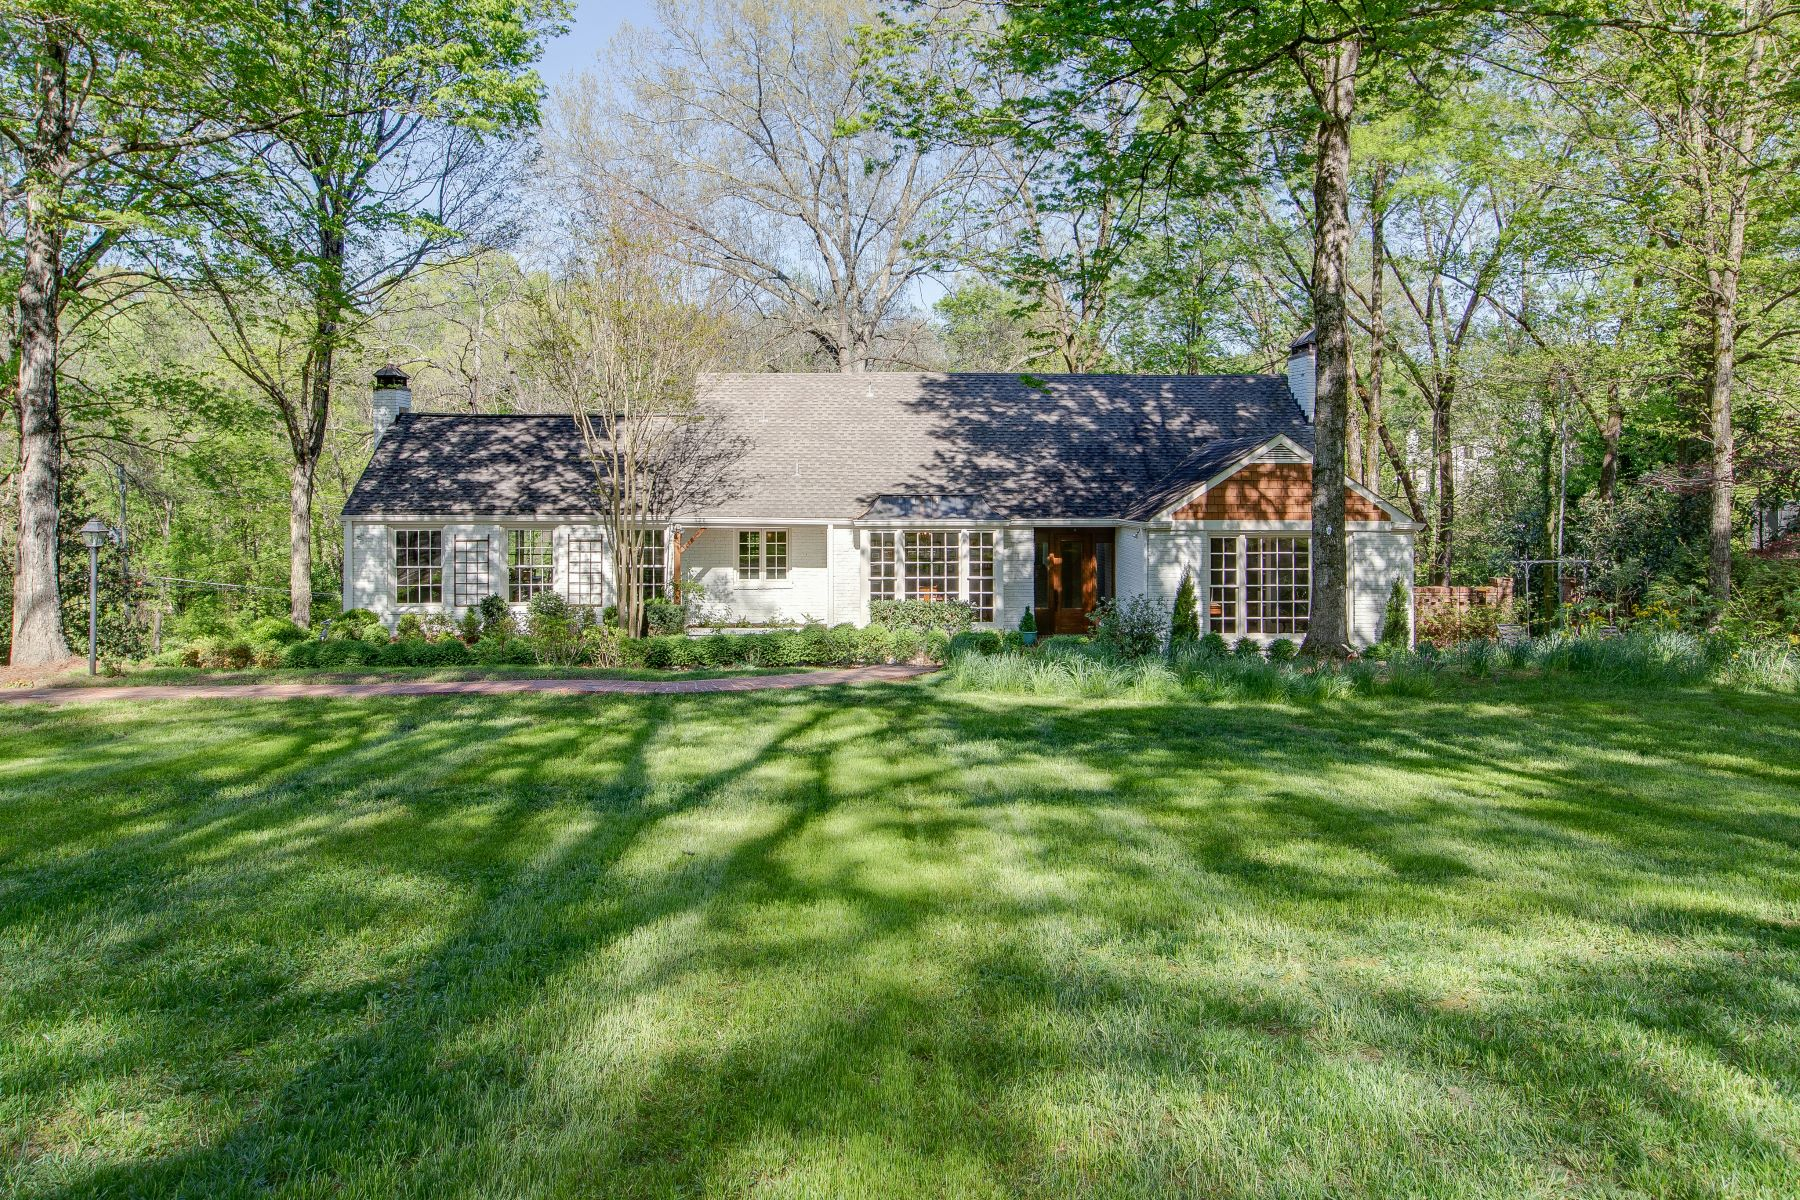 Single Family Homes pour l Vente à Belle Meade Beauty on Picturesque Lot 408 Sunnyside Drive, Nashville, Tennessee 37205 États-Unis